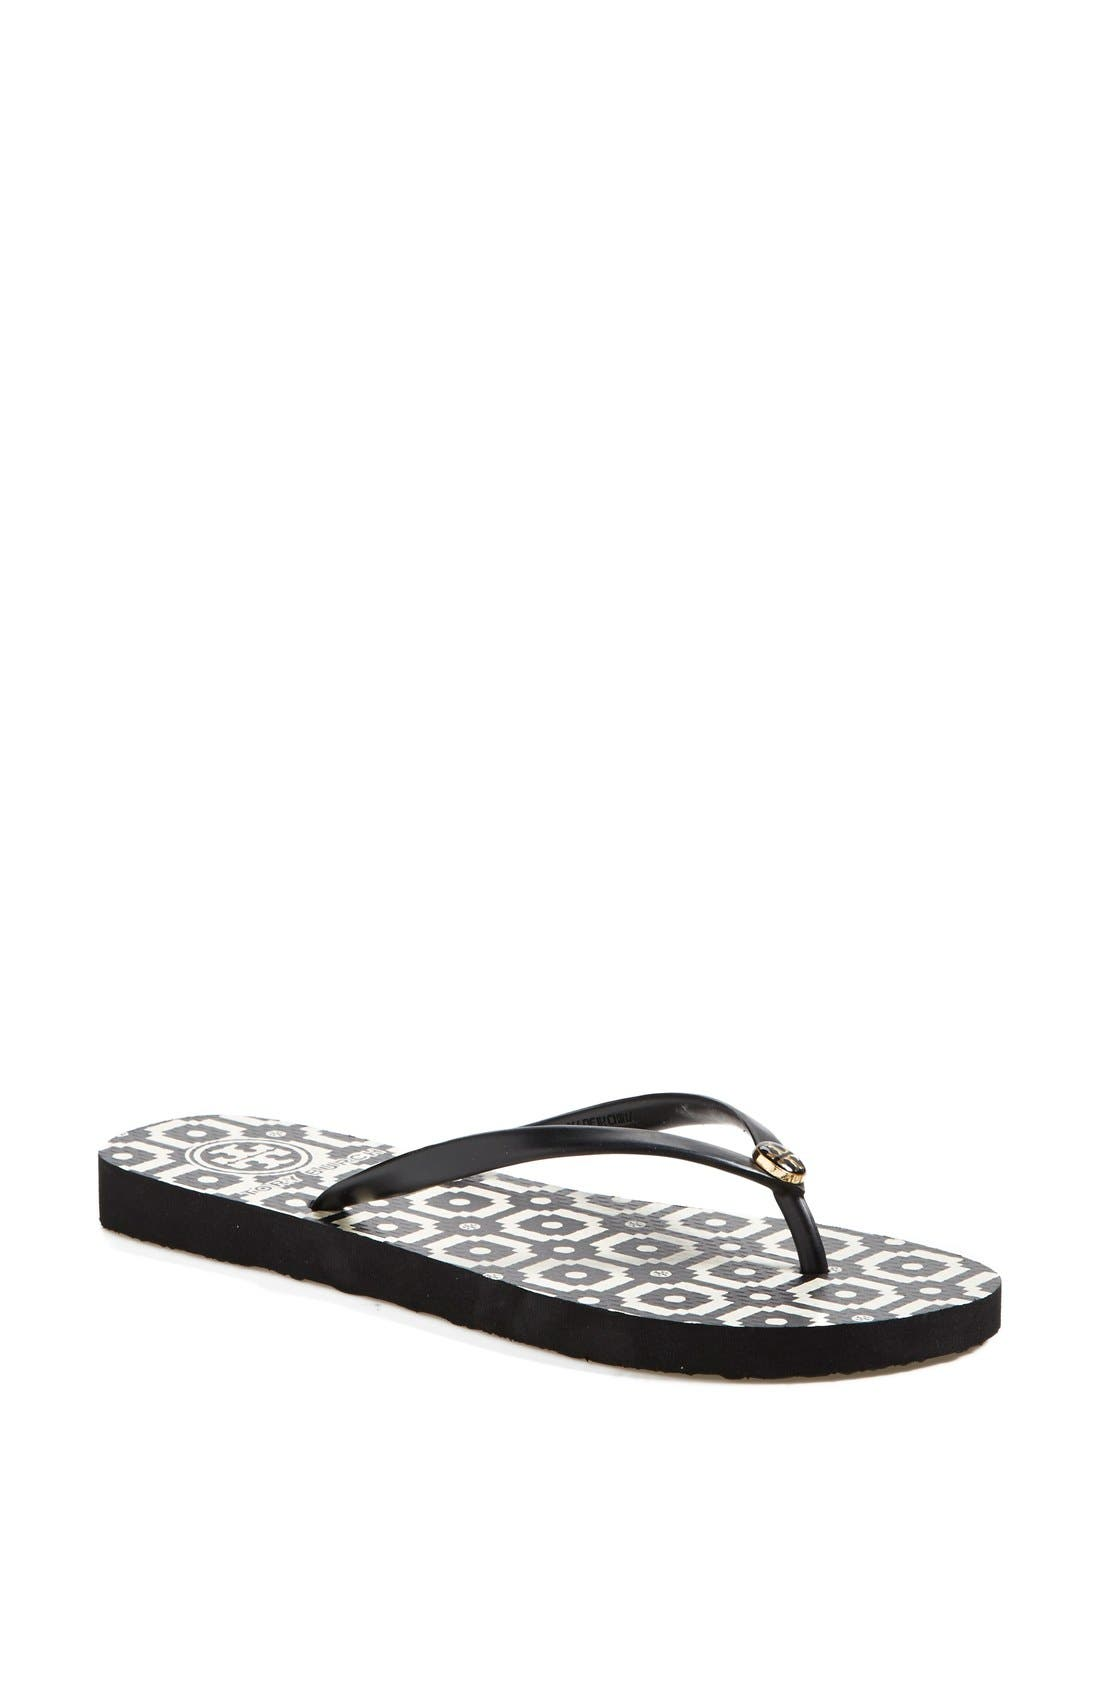 Alternate Image 1 Selected - Tory Burch Print Flip Flop